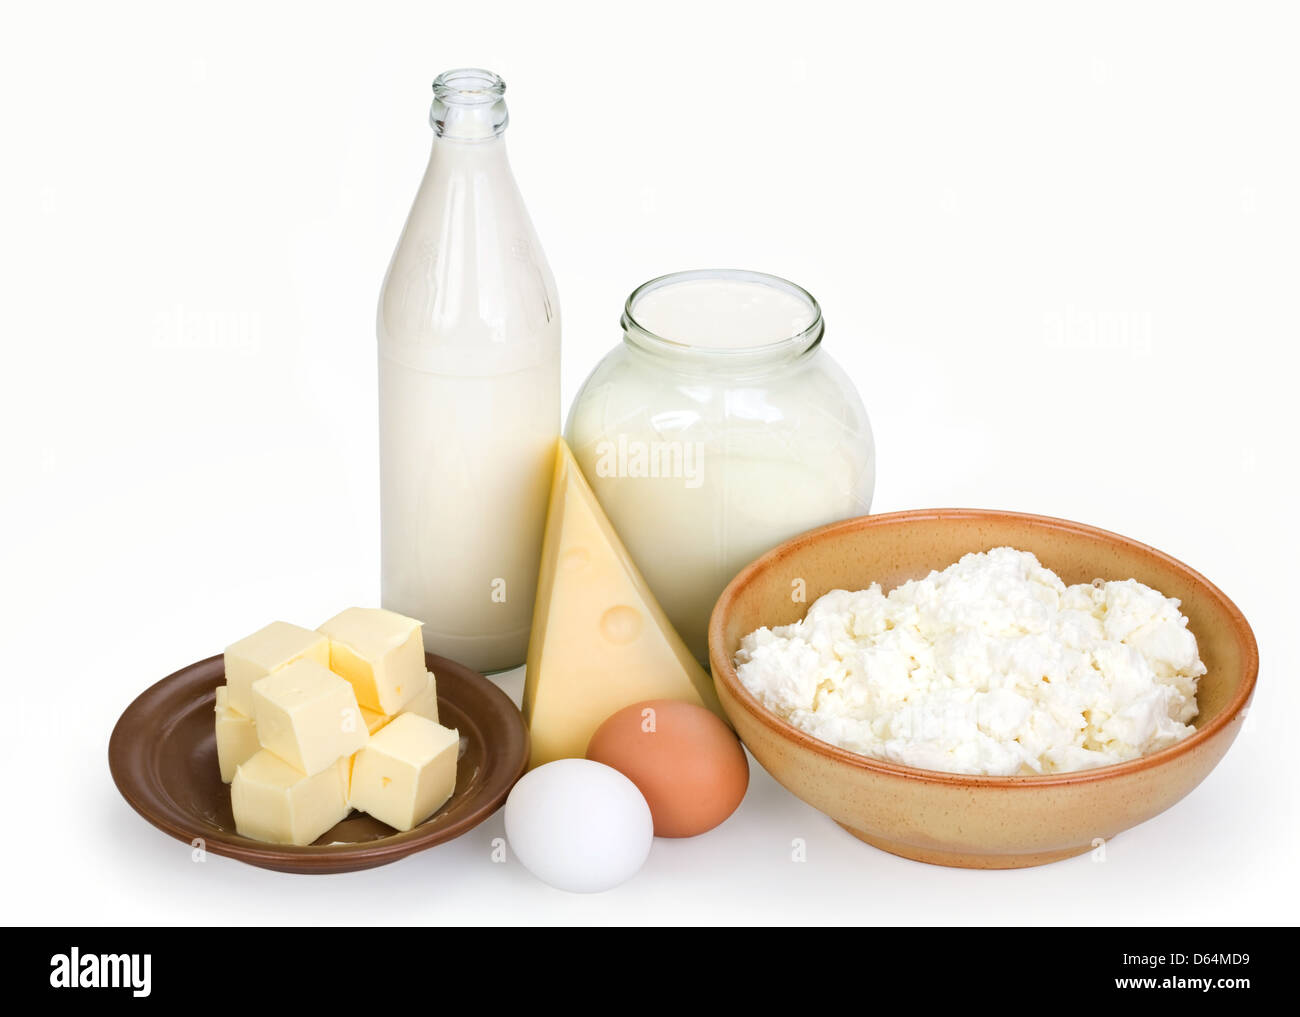 dairy products and eggs - Stock Image